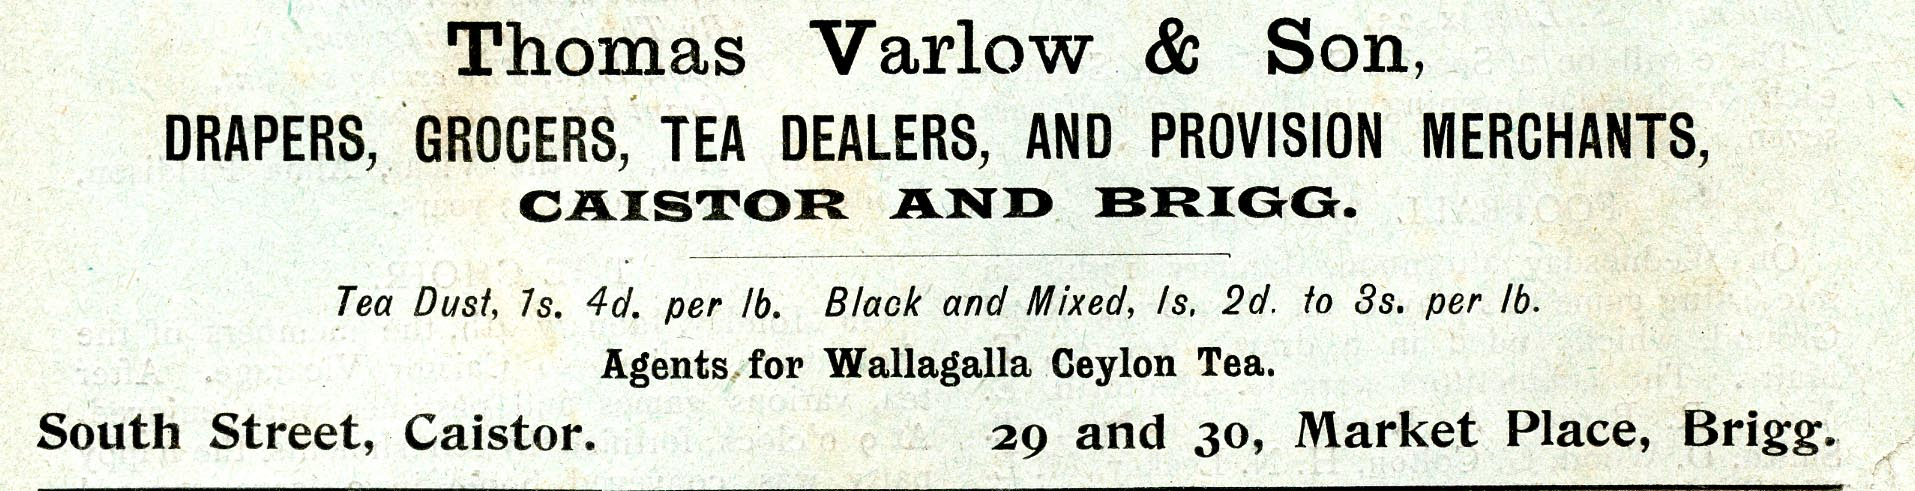 Advert 1904 Thomas Varlow.jpg